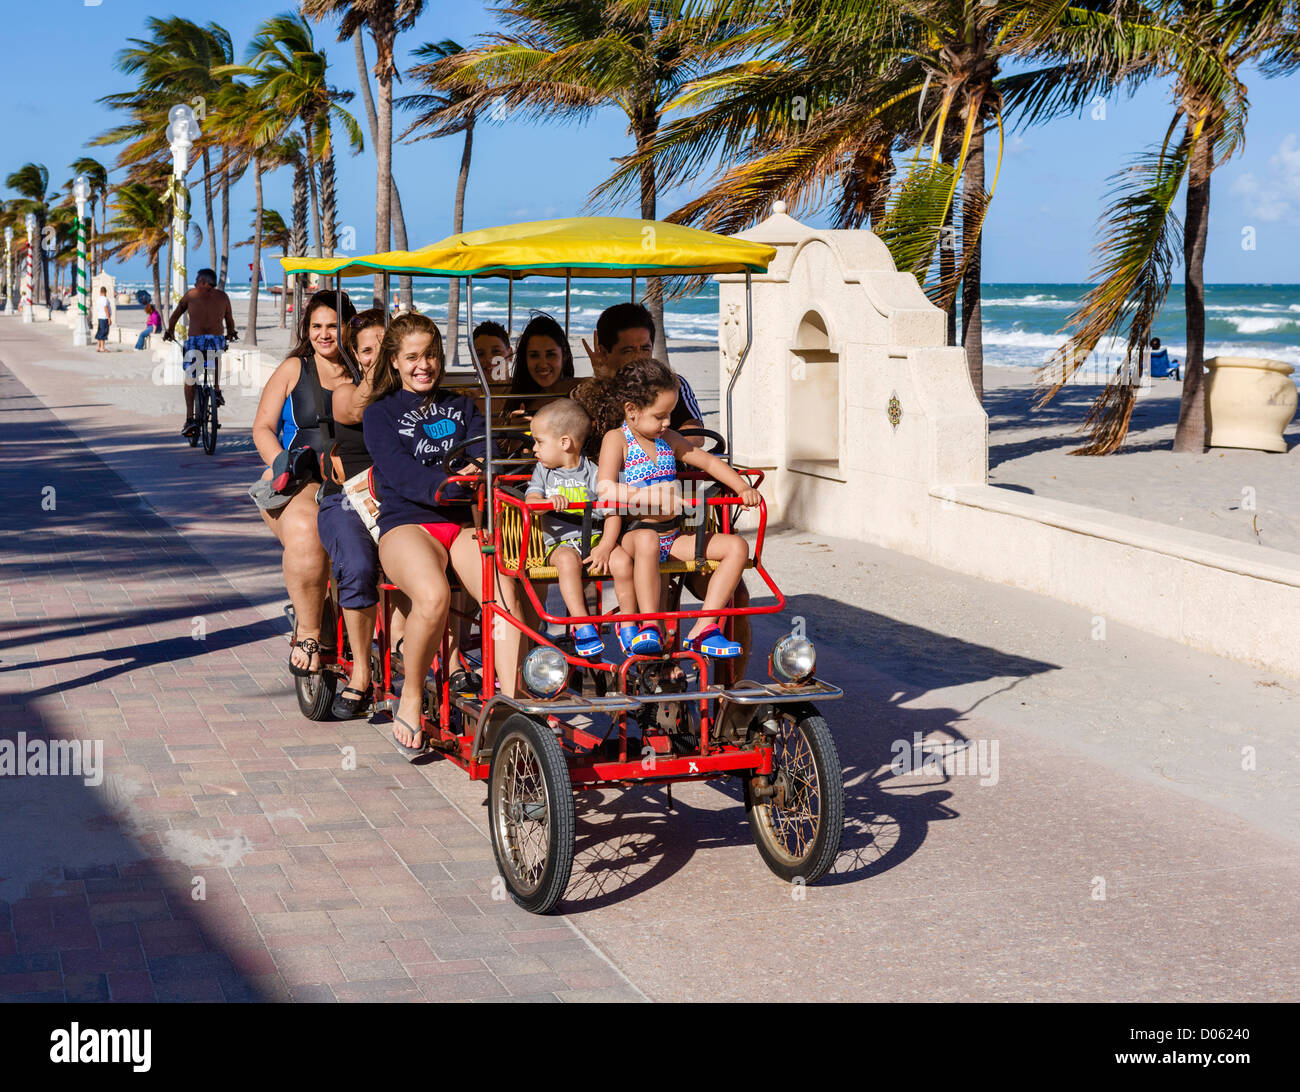 Les touristes en quadricycle sur le Broadwalk à Hollywood, près de Fort Lauderdale, comté de Broward, Photo Stock